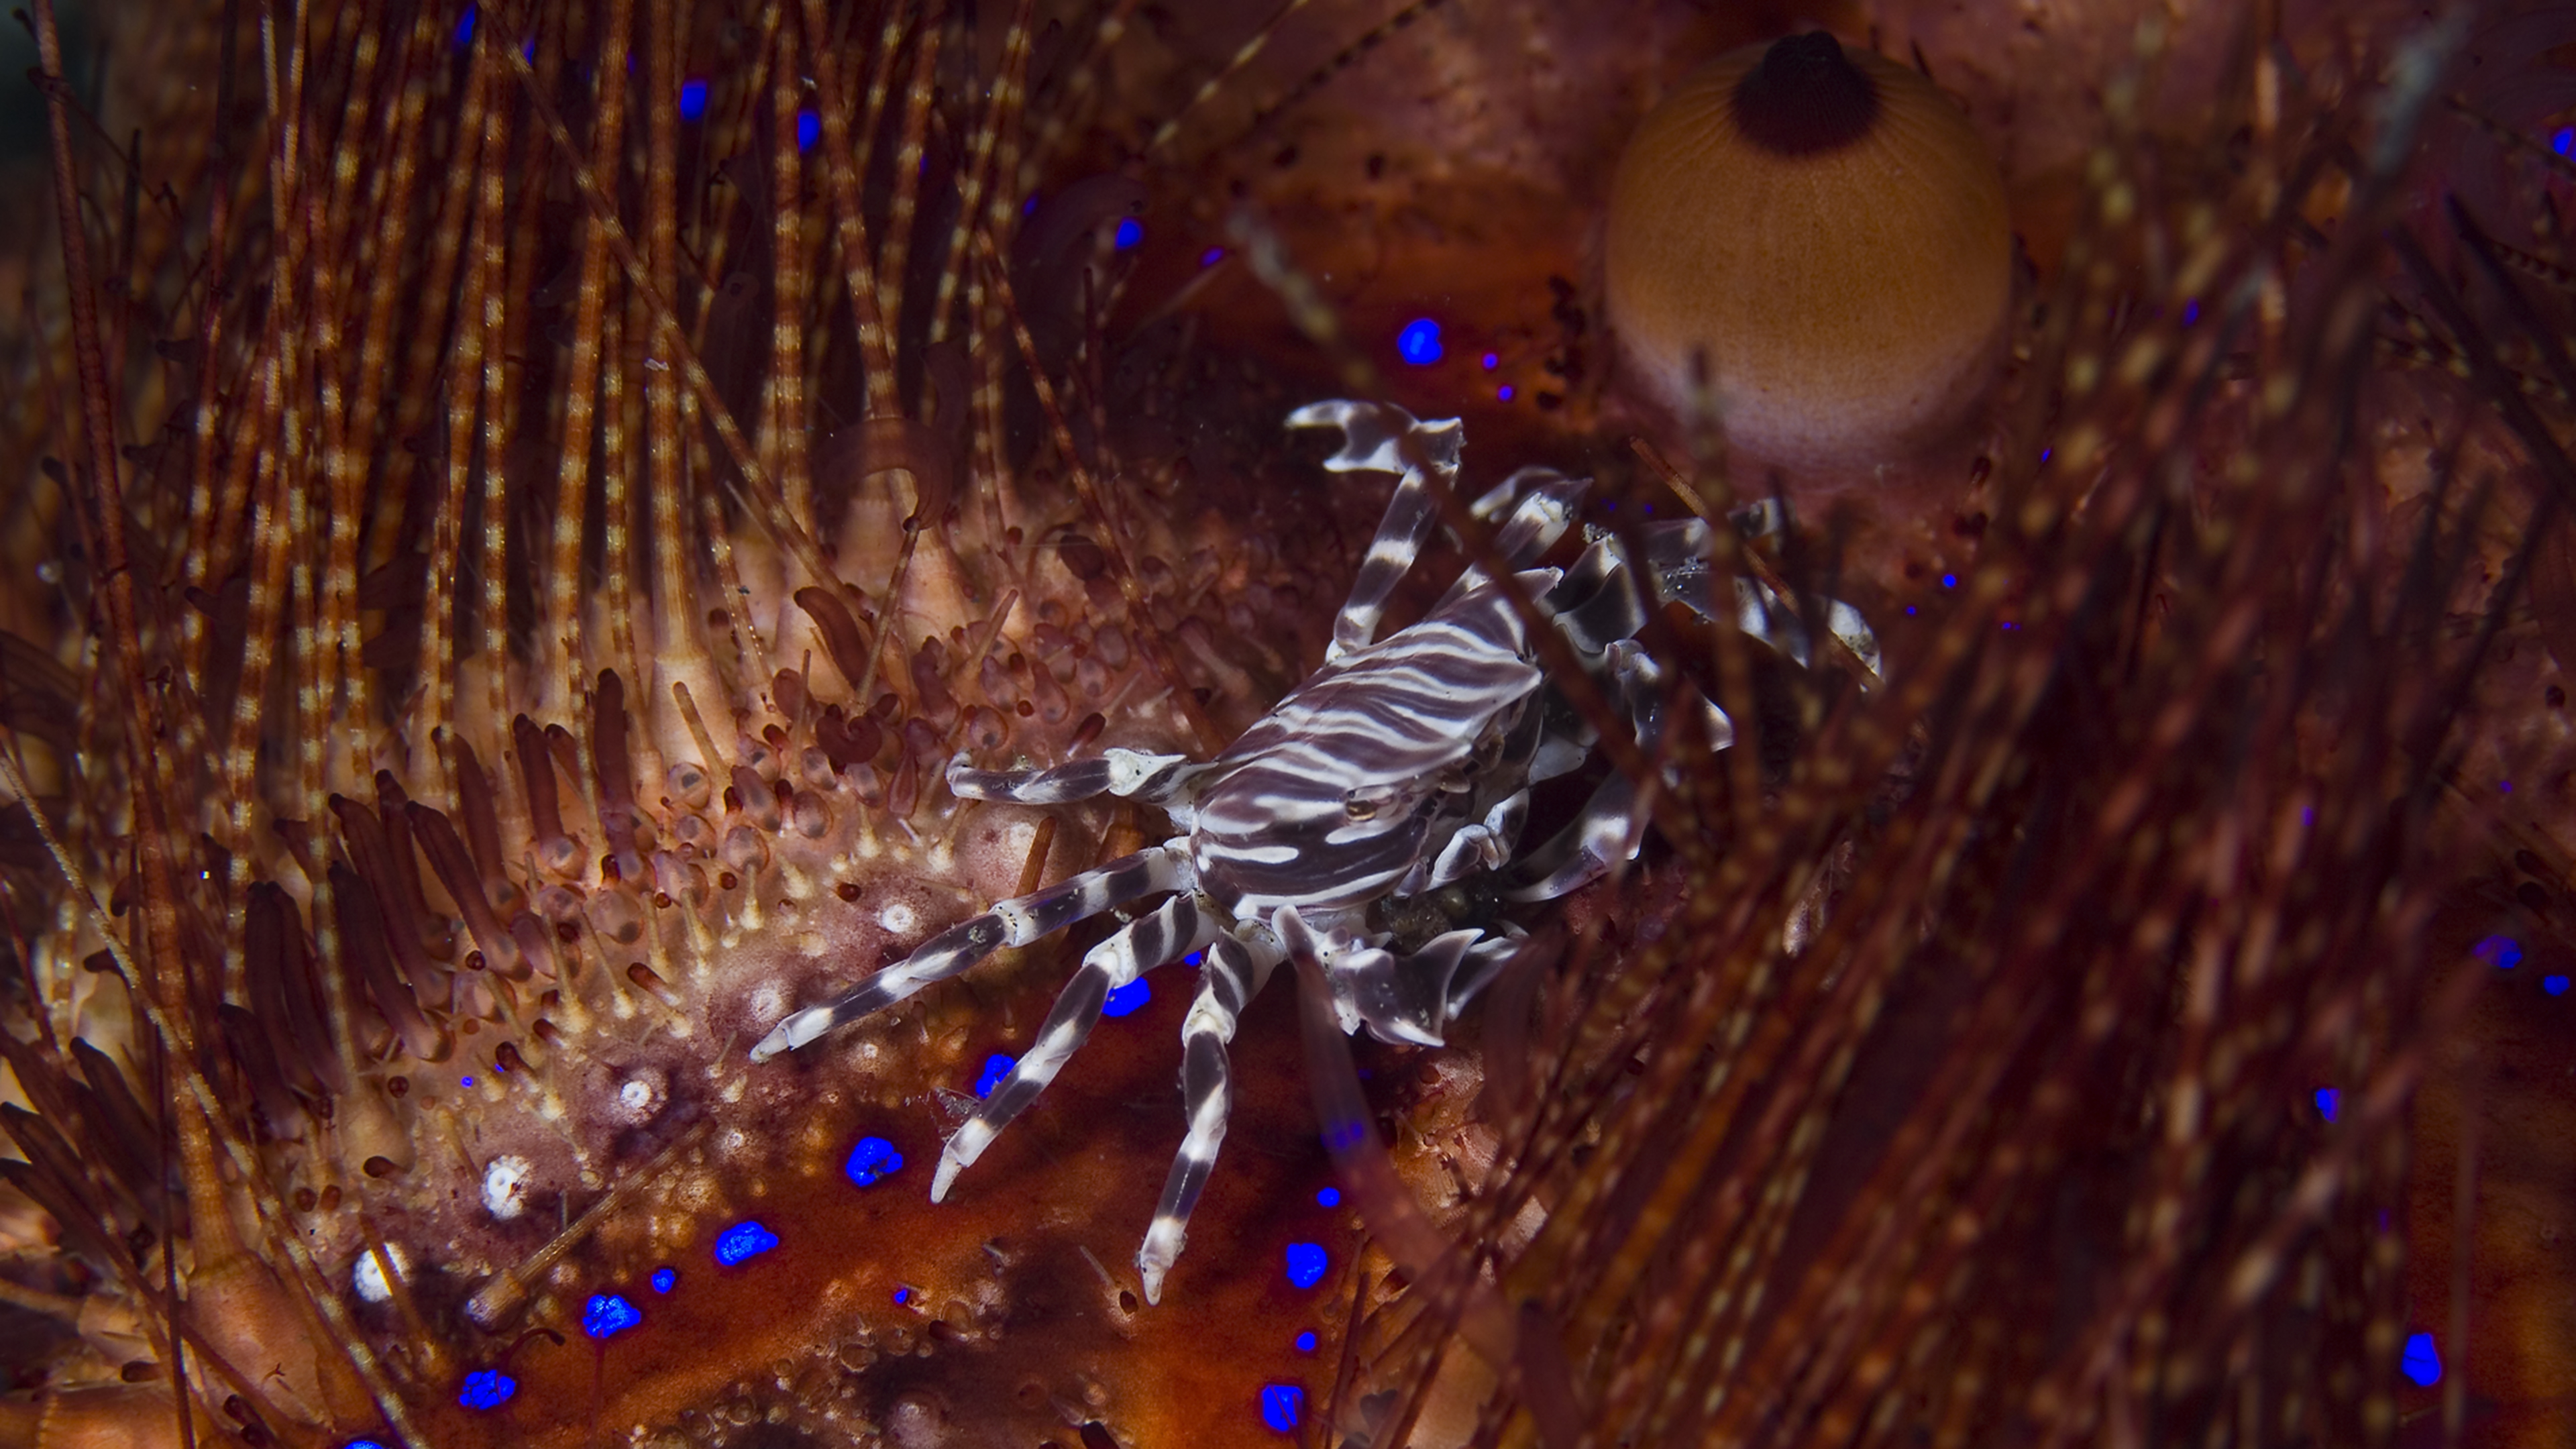 Zebra Crab on Flame Urchin